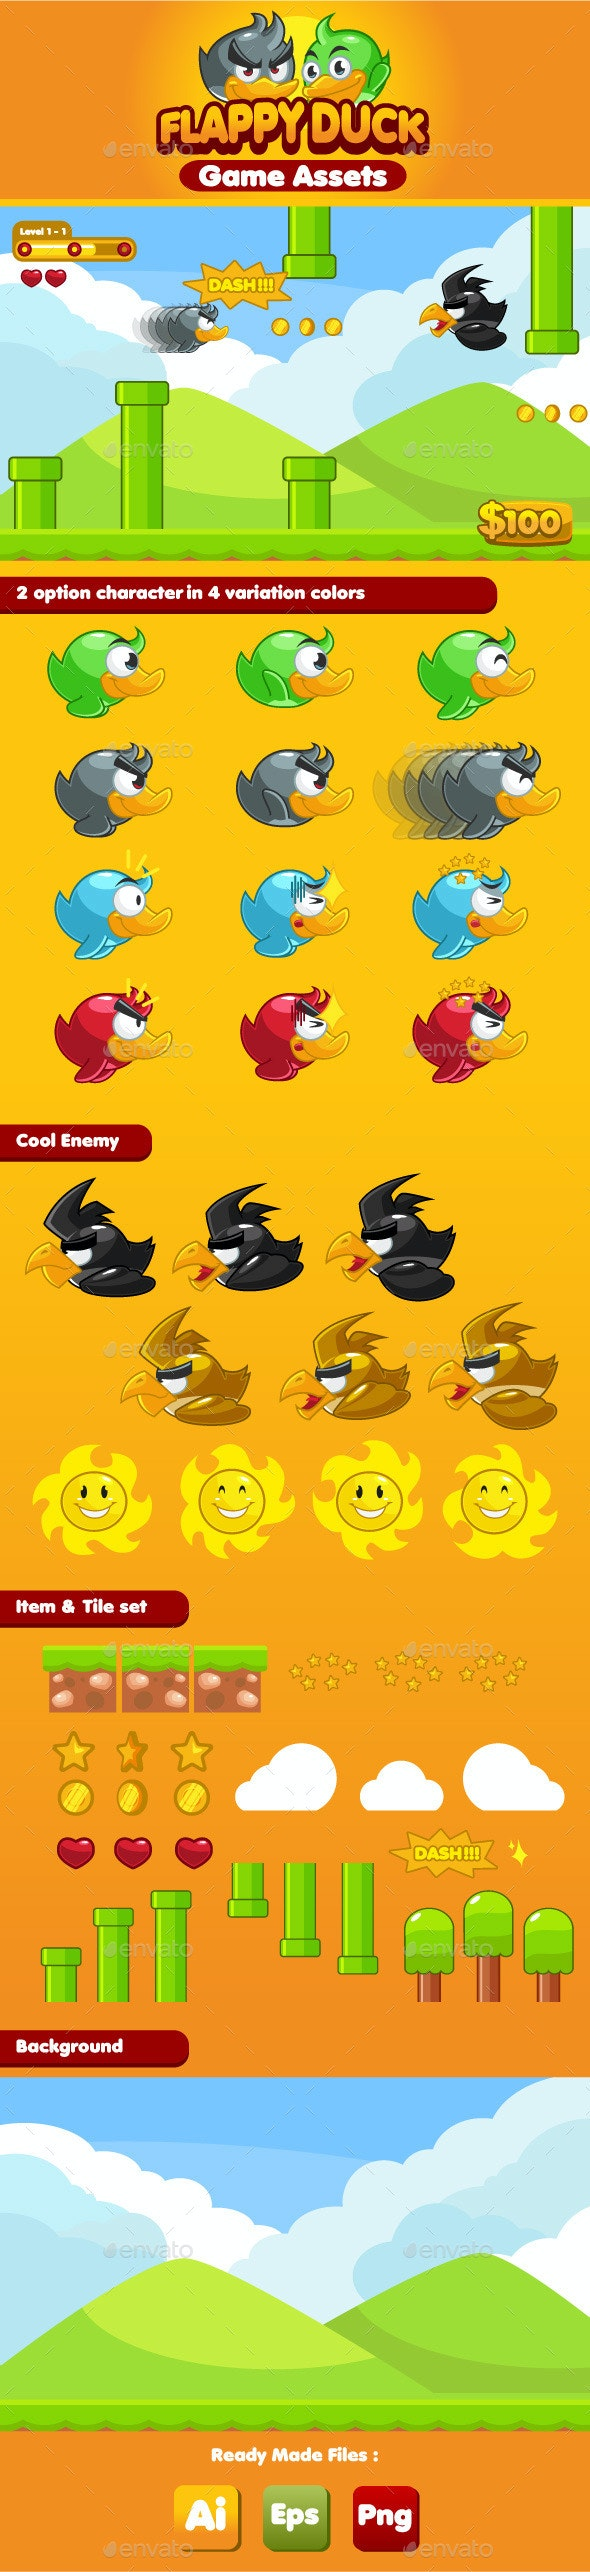 Flappy Duck Game Assets - Game Kits Game Assets